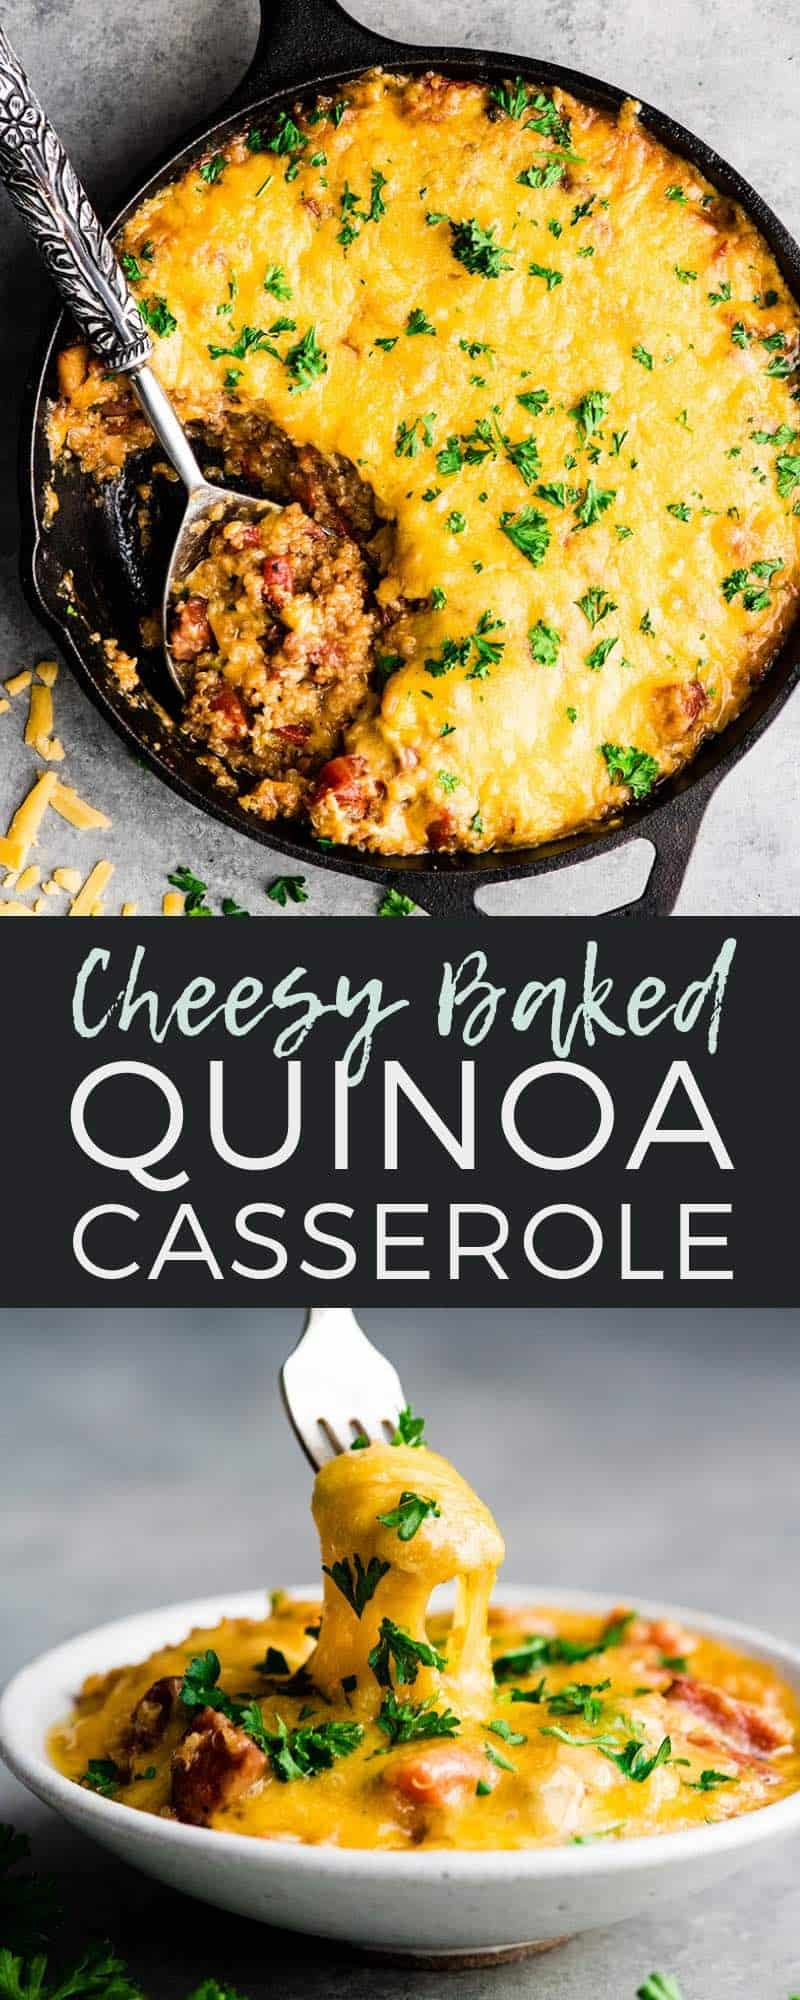 This Baked Quinoa Casserole is an easy, hearty main dish that is perfect for fall. It's ready in under 30 minutes and is a great gluten-free dinner recipe to feed a crowd! Even my kids loved this cheesy quinoa recipe made with @Tillamook Farmstyle Cut Sharp Cheddar Shredded Cheese and loaded with sausage, apples and veggies! #Tillamook_Partner #ad #bakedquinoa #quinoa #quinoacasserole